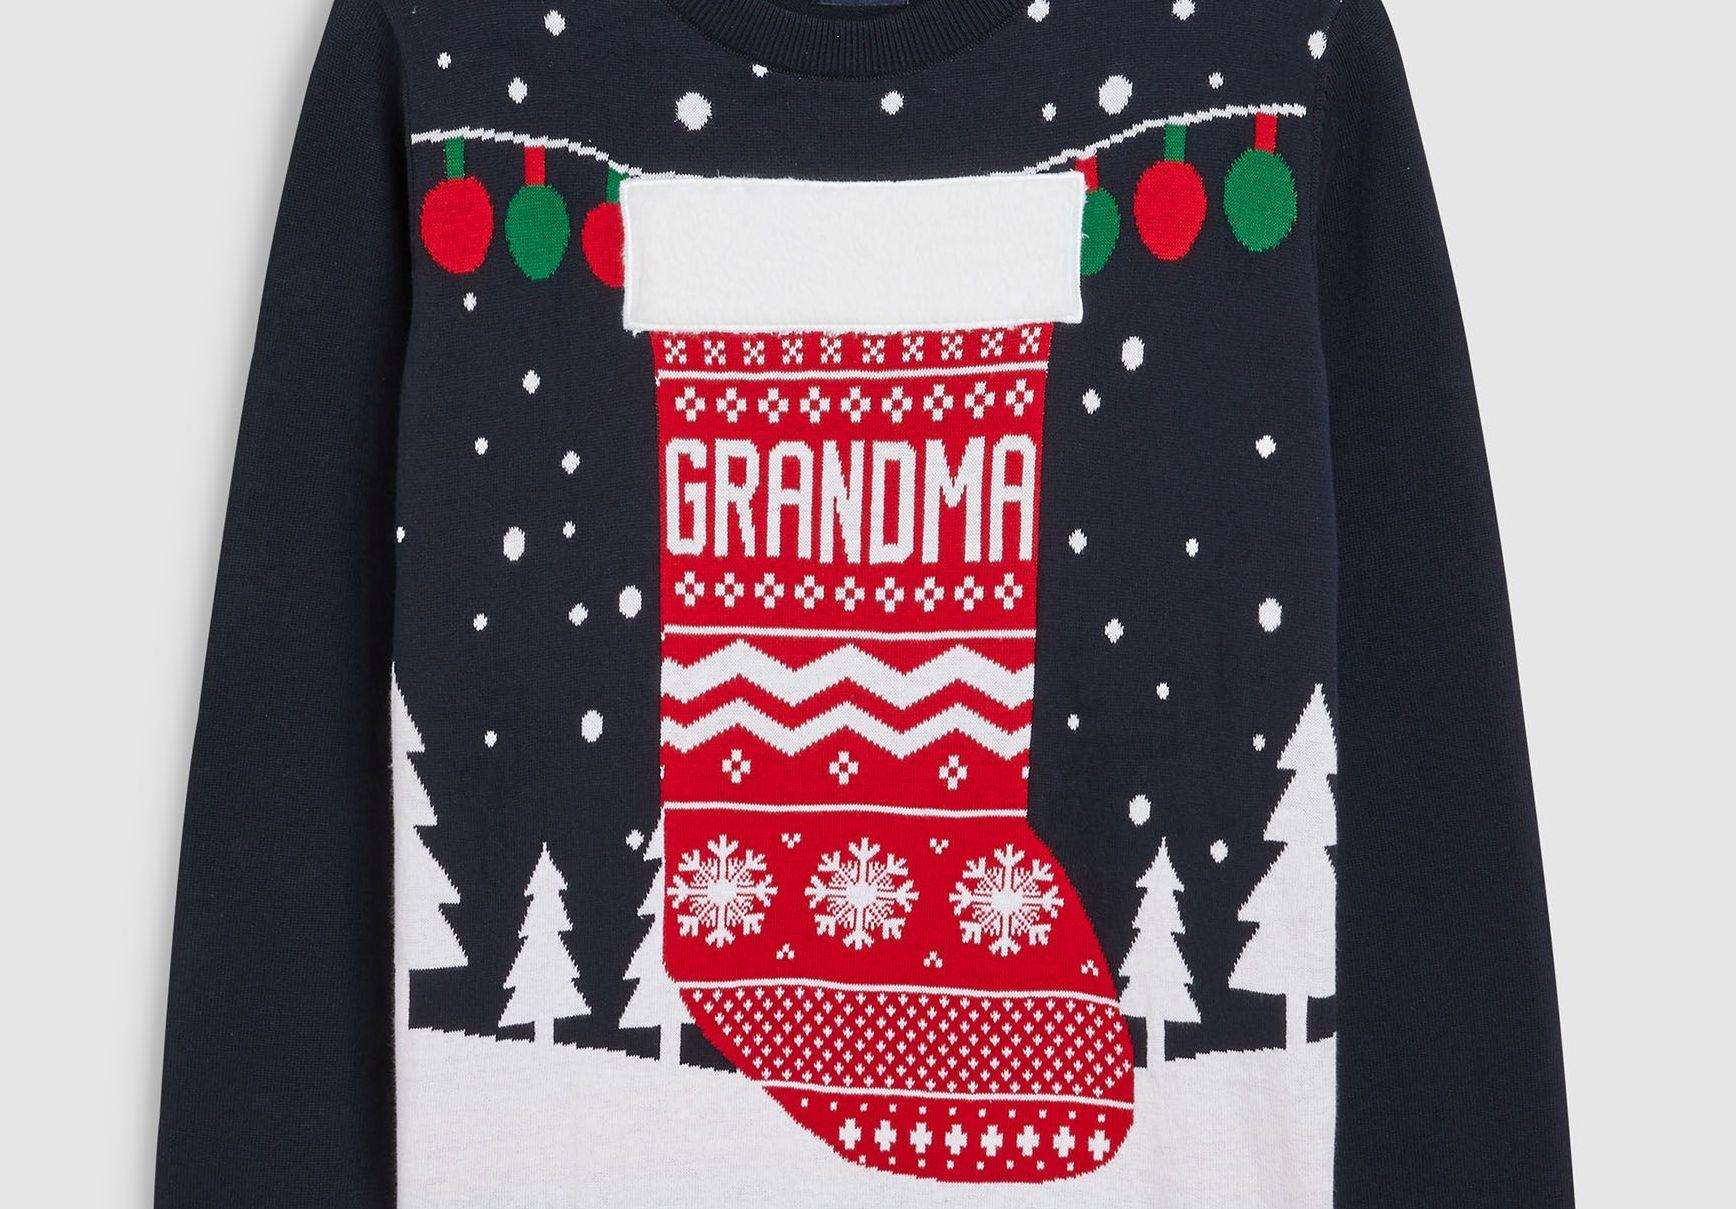 You're never too old for a Christmas jumper. This grandma christmas stocking version is £26 at Next.